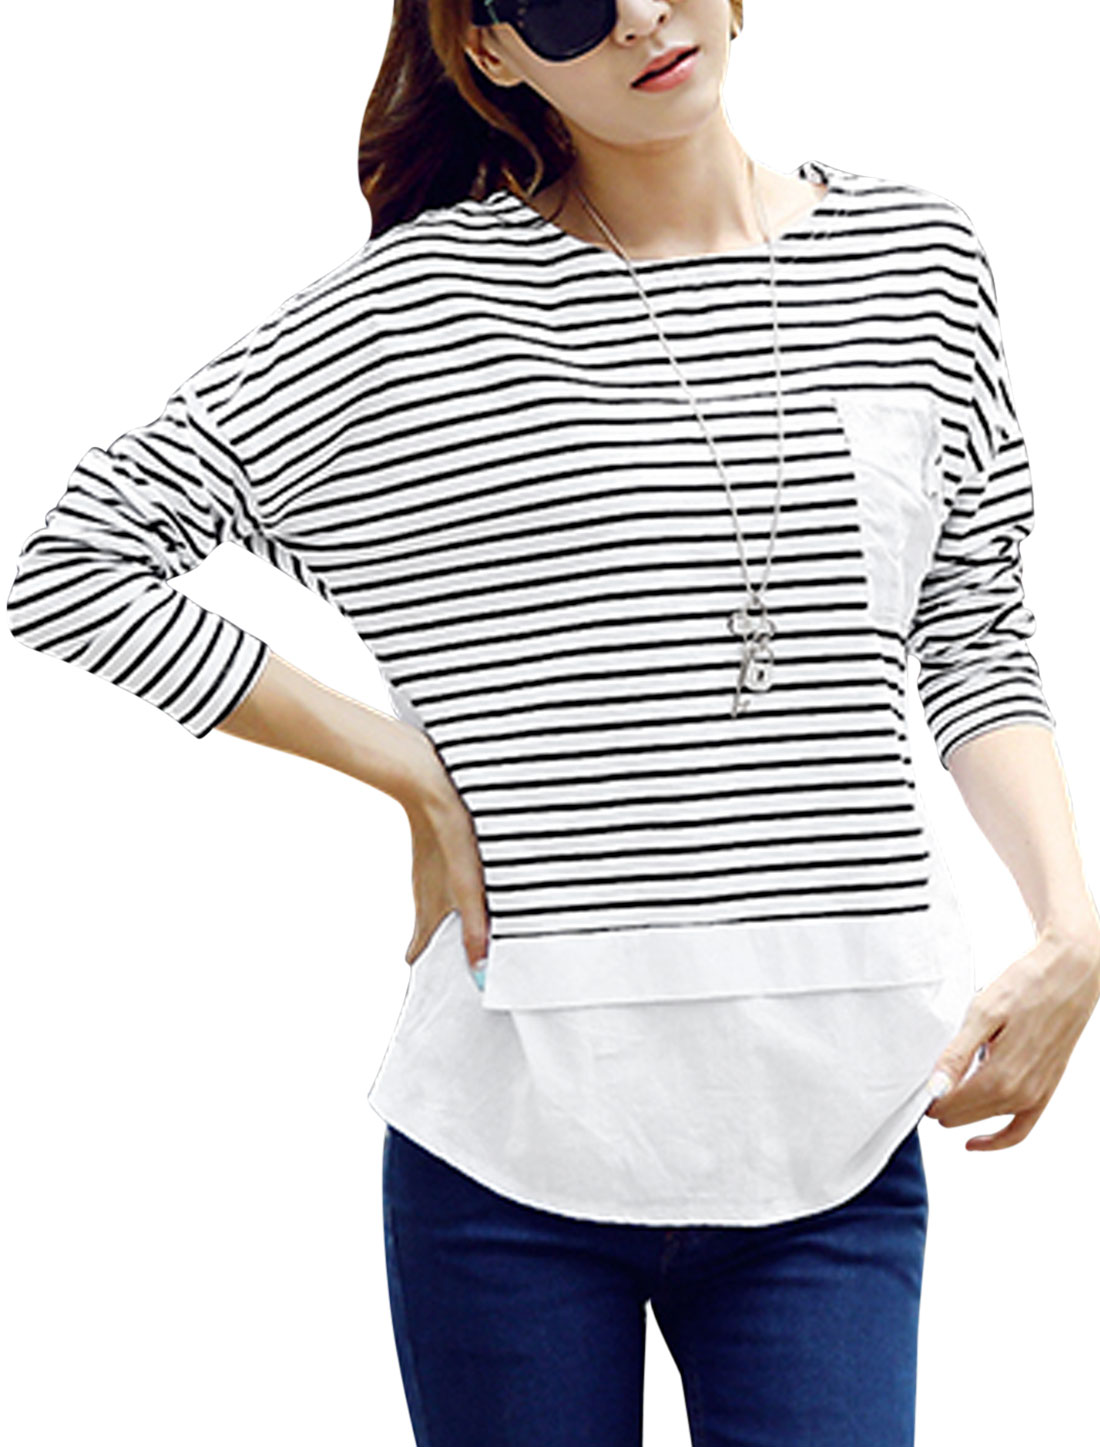 Women Long Sleeve Round Neck Pullover Stripes Pattern Tee Shirt White M